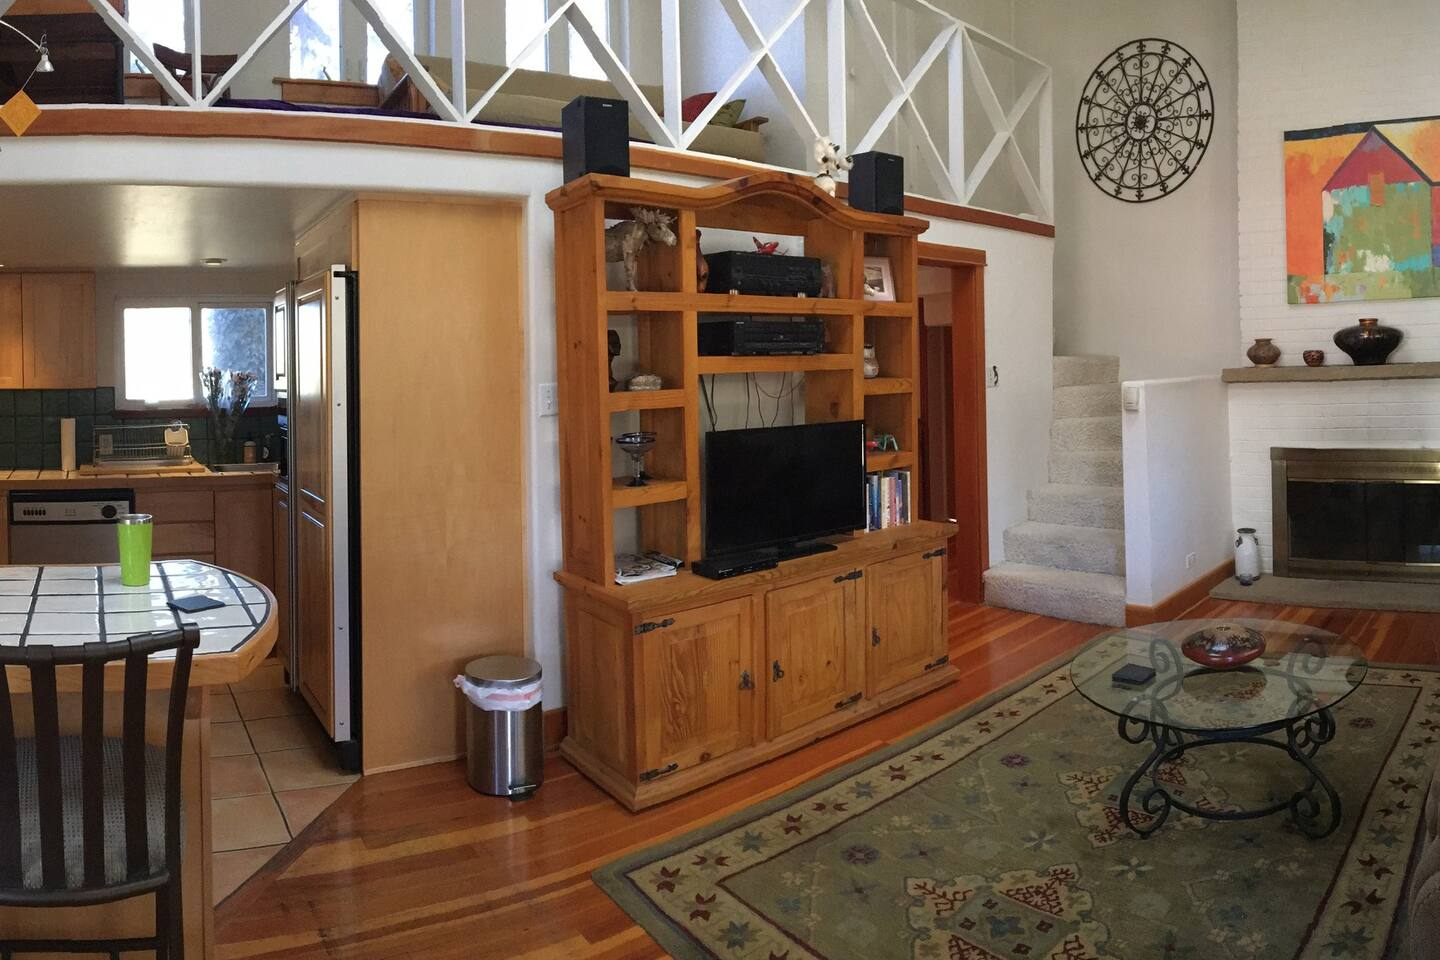 Panorama of the main room living space